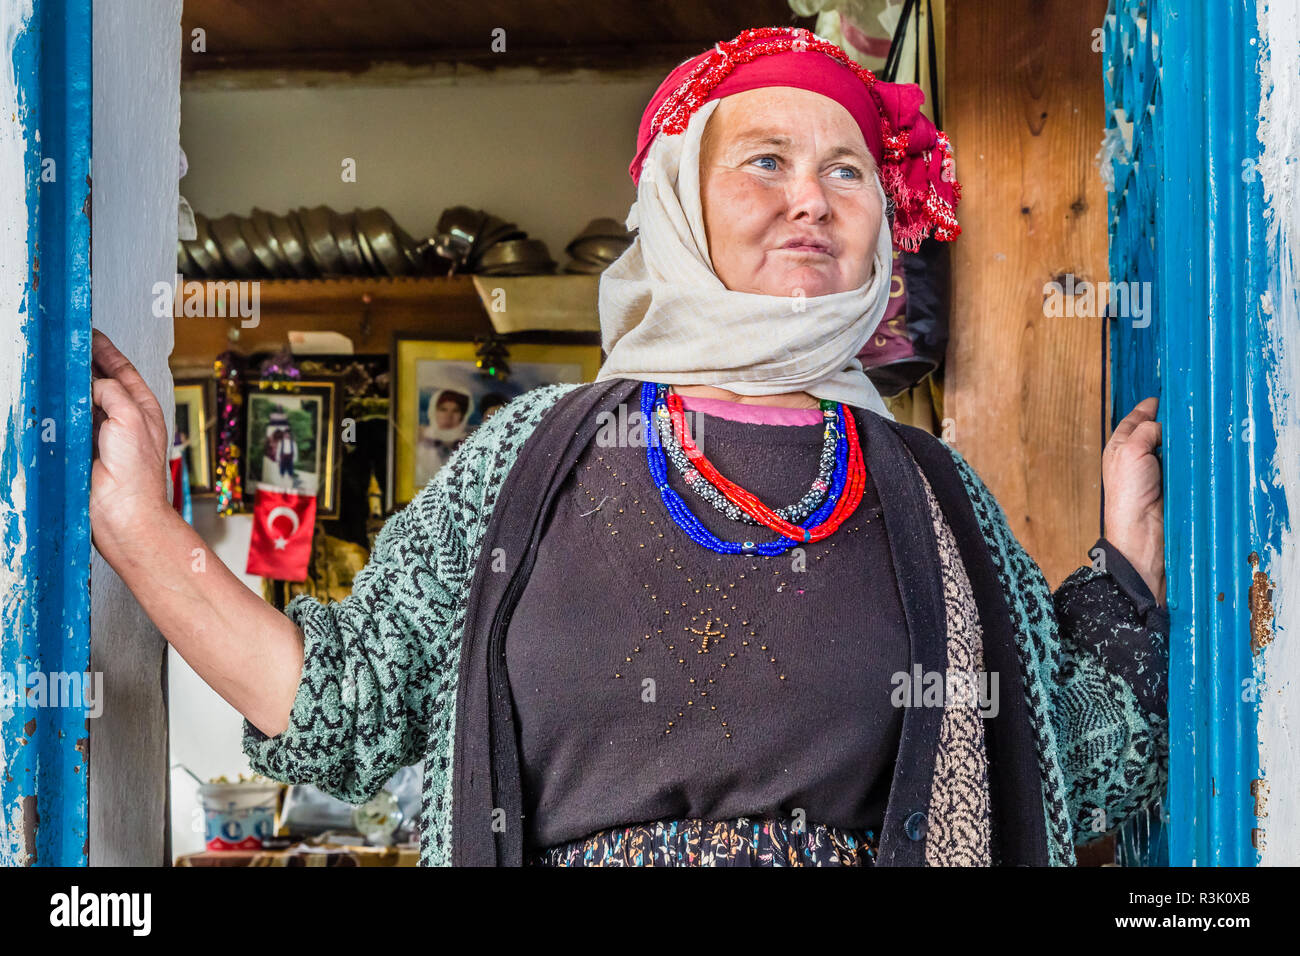 Comakdag Kizilagac, Western Anatolia, Turkey, February 23, 2013:  Village woman looking out of the door to her house. - Stock Image